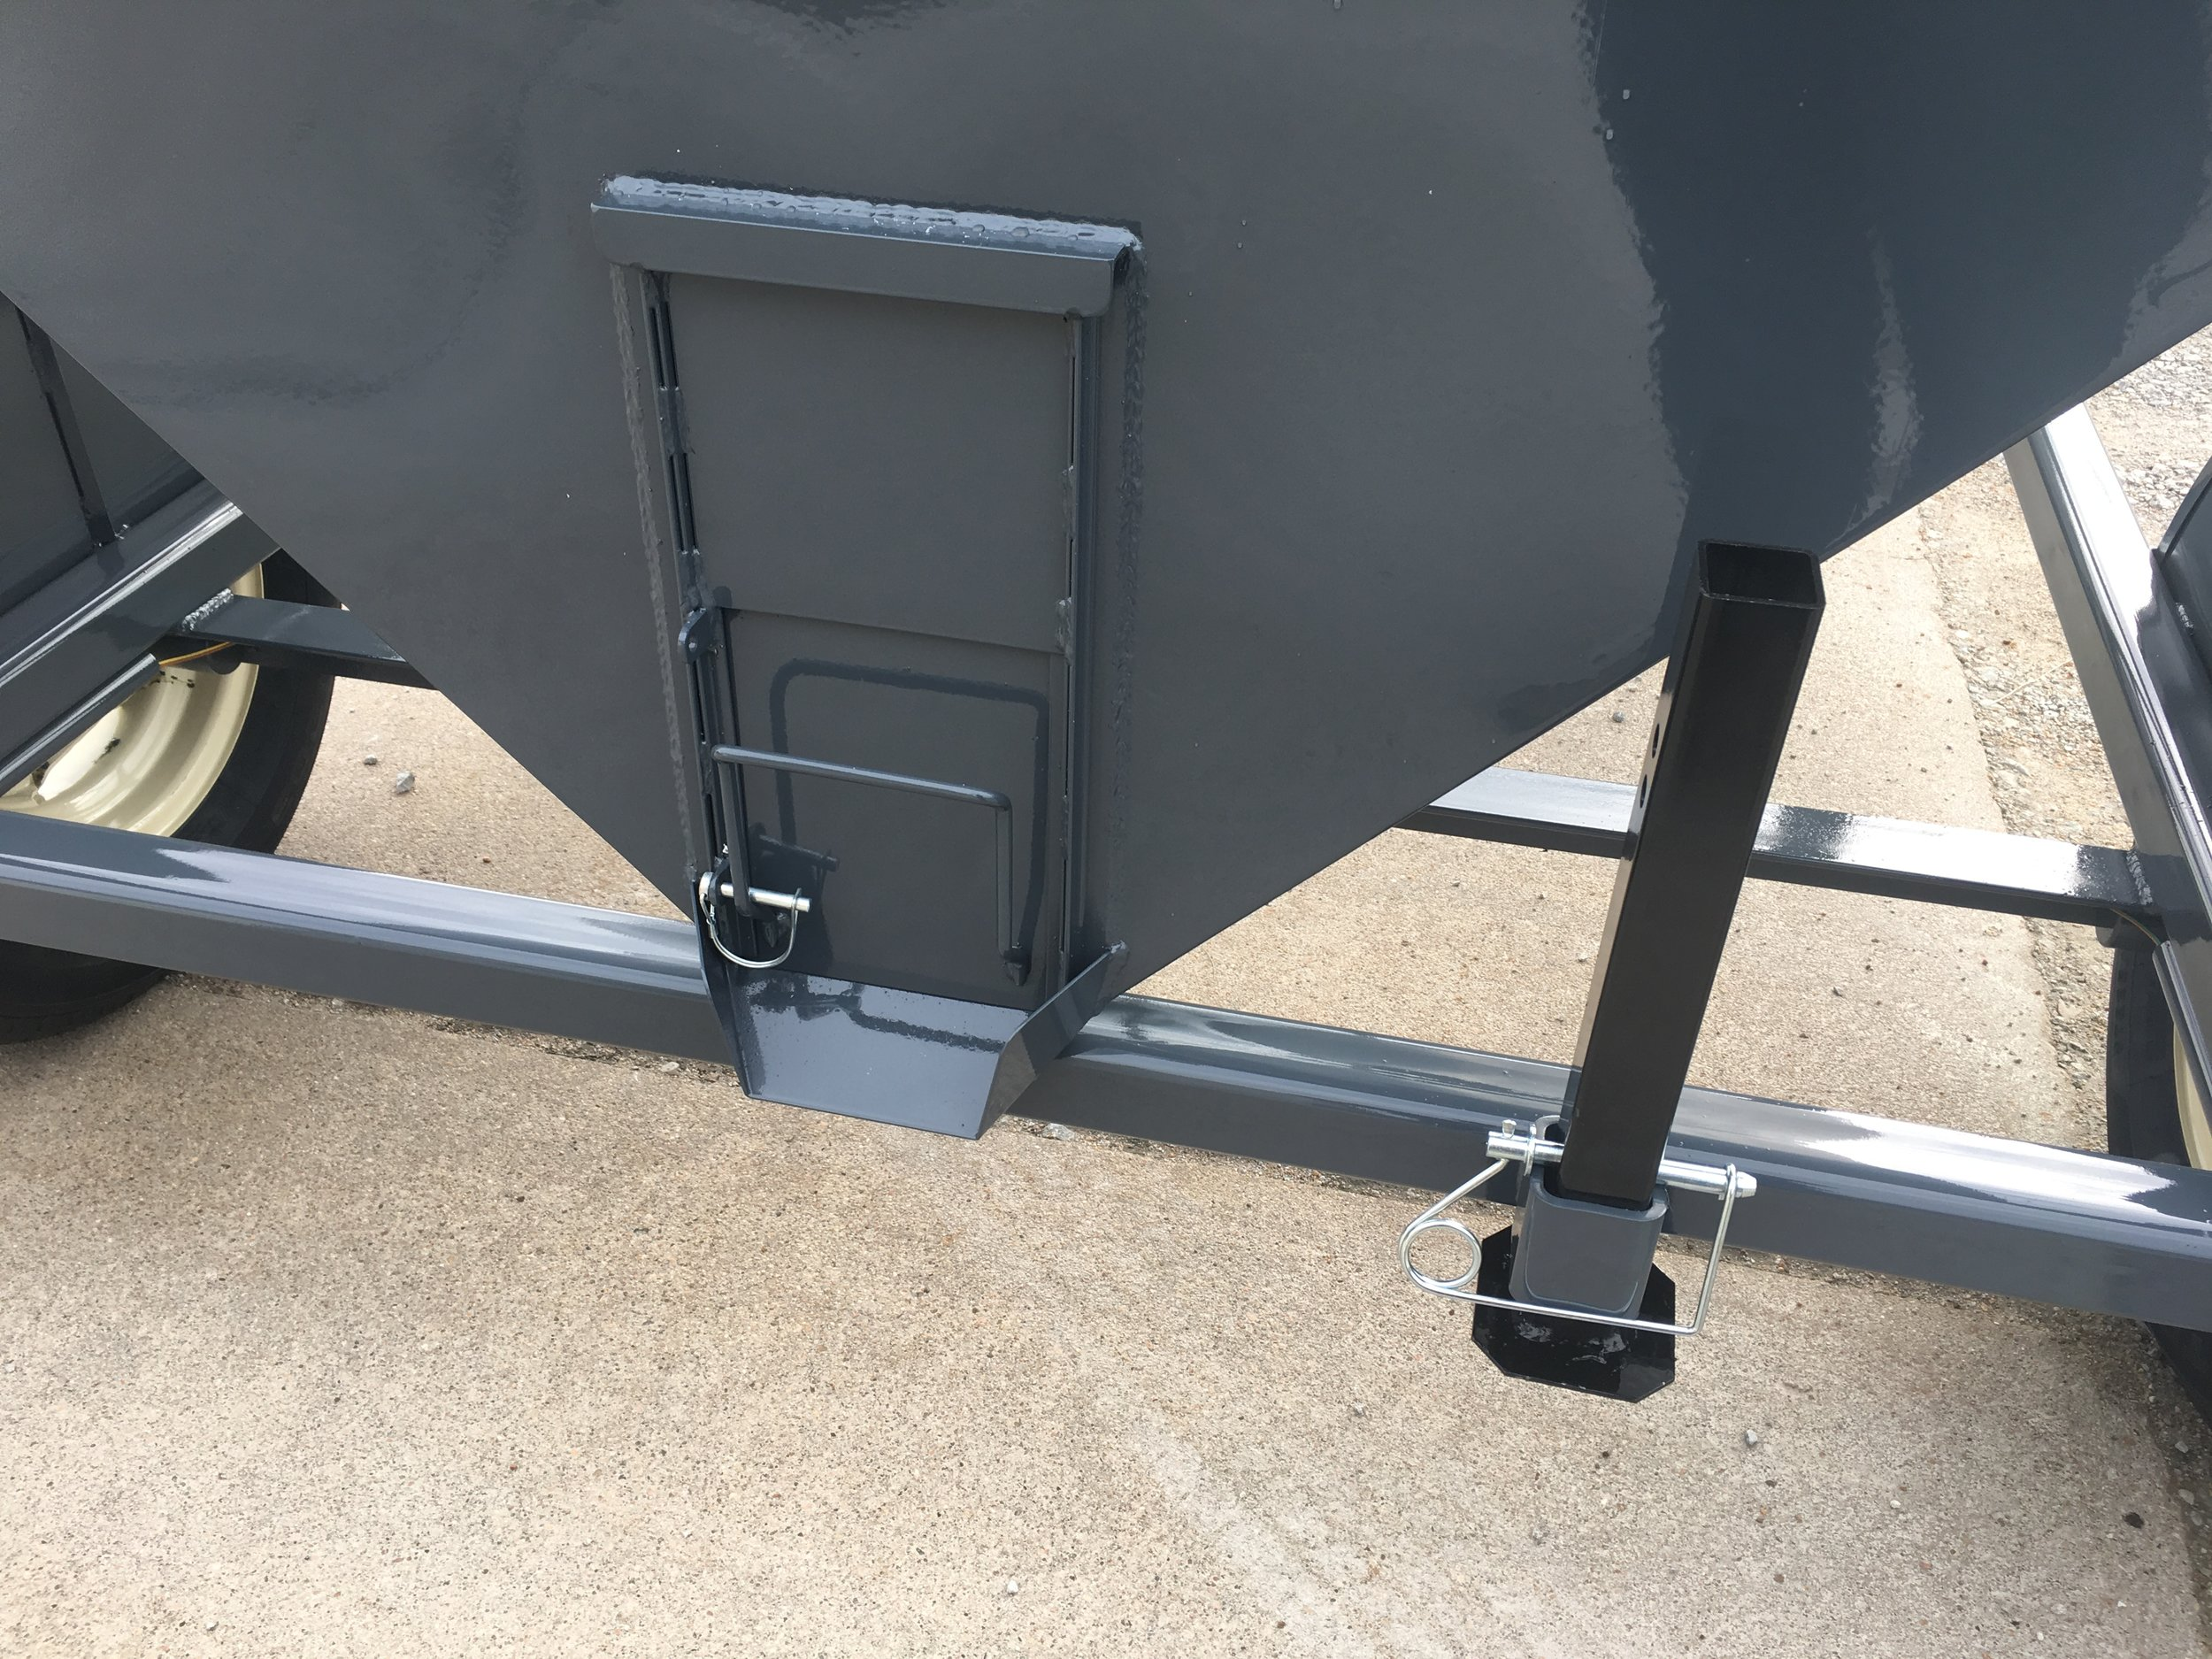 Easy slide grain door makes filling those 5 gallon or smaller buckets a snap. Stand on the right is to be lowered when cart is not hooked to a truck or tractor to assure stability of not tipping backwards when you have grain or feed in the bin. This safety stand is standard equipment on all towable units. It is not offered on any of the stationary models.